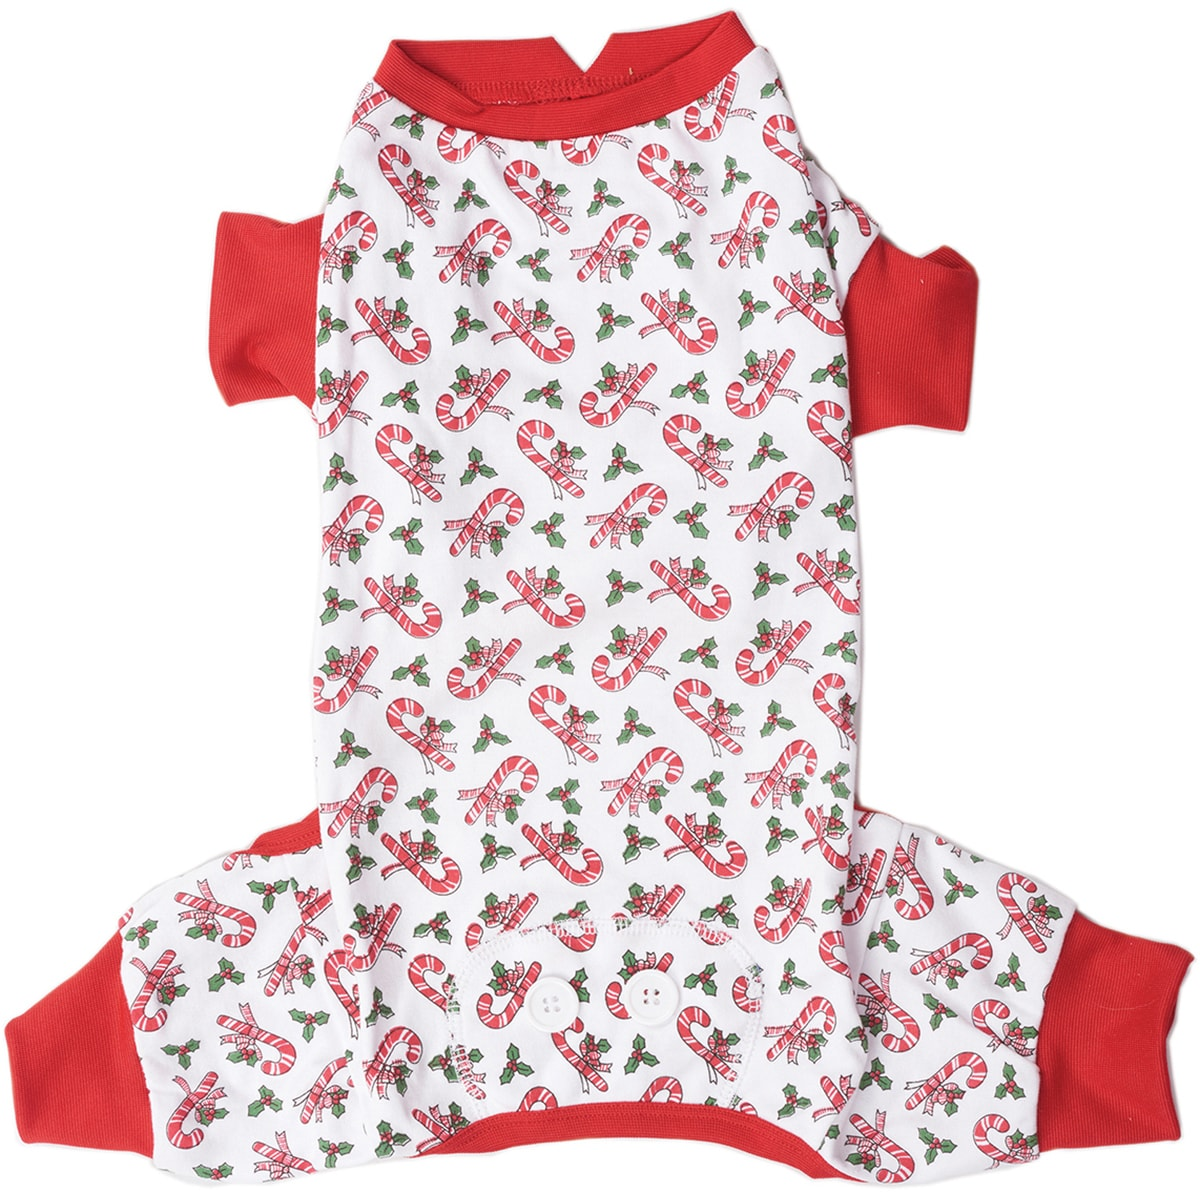 Ethical Pets Candy Cane Dog Pajamas (Small), Multi, Size S